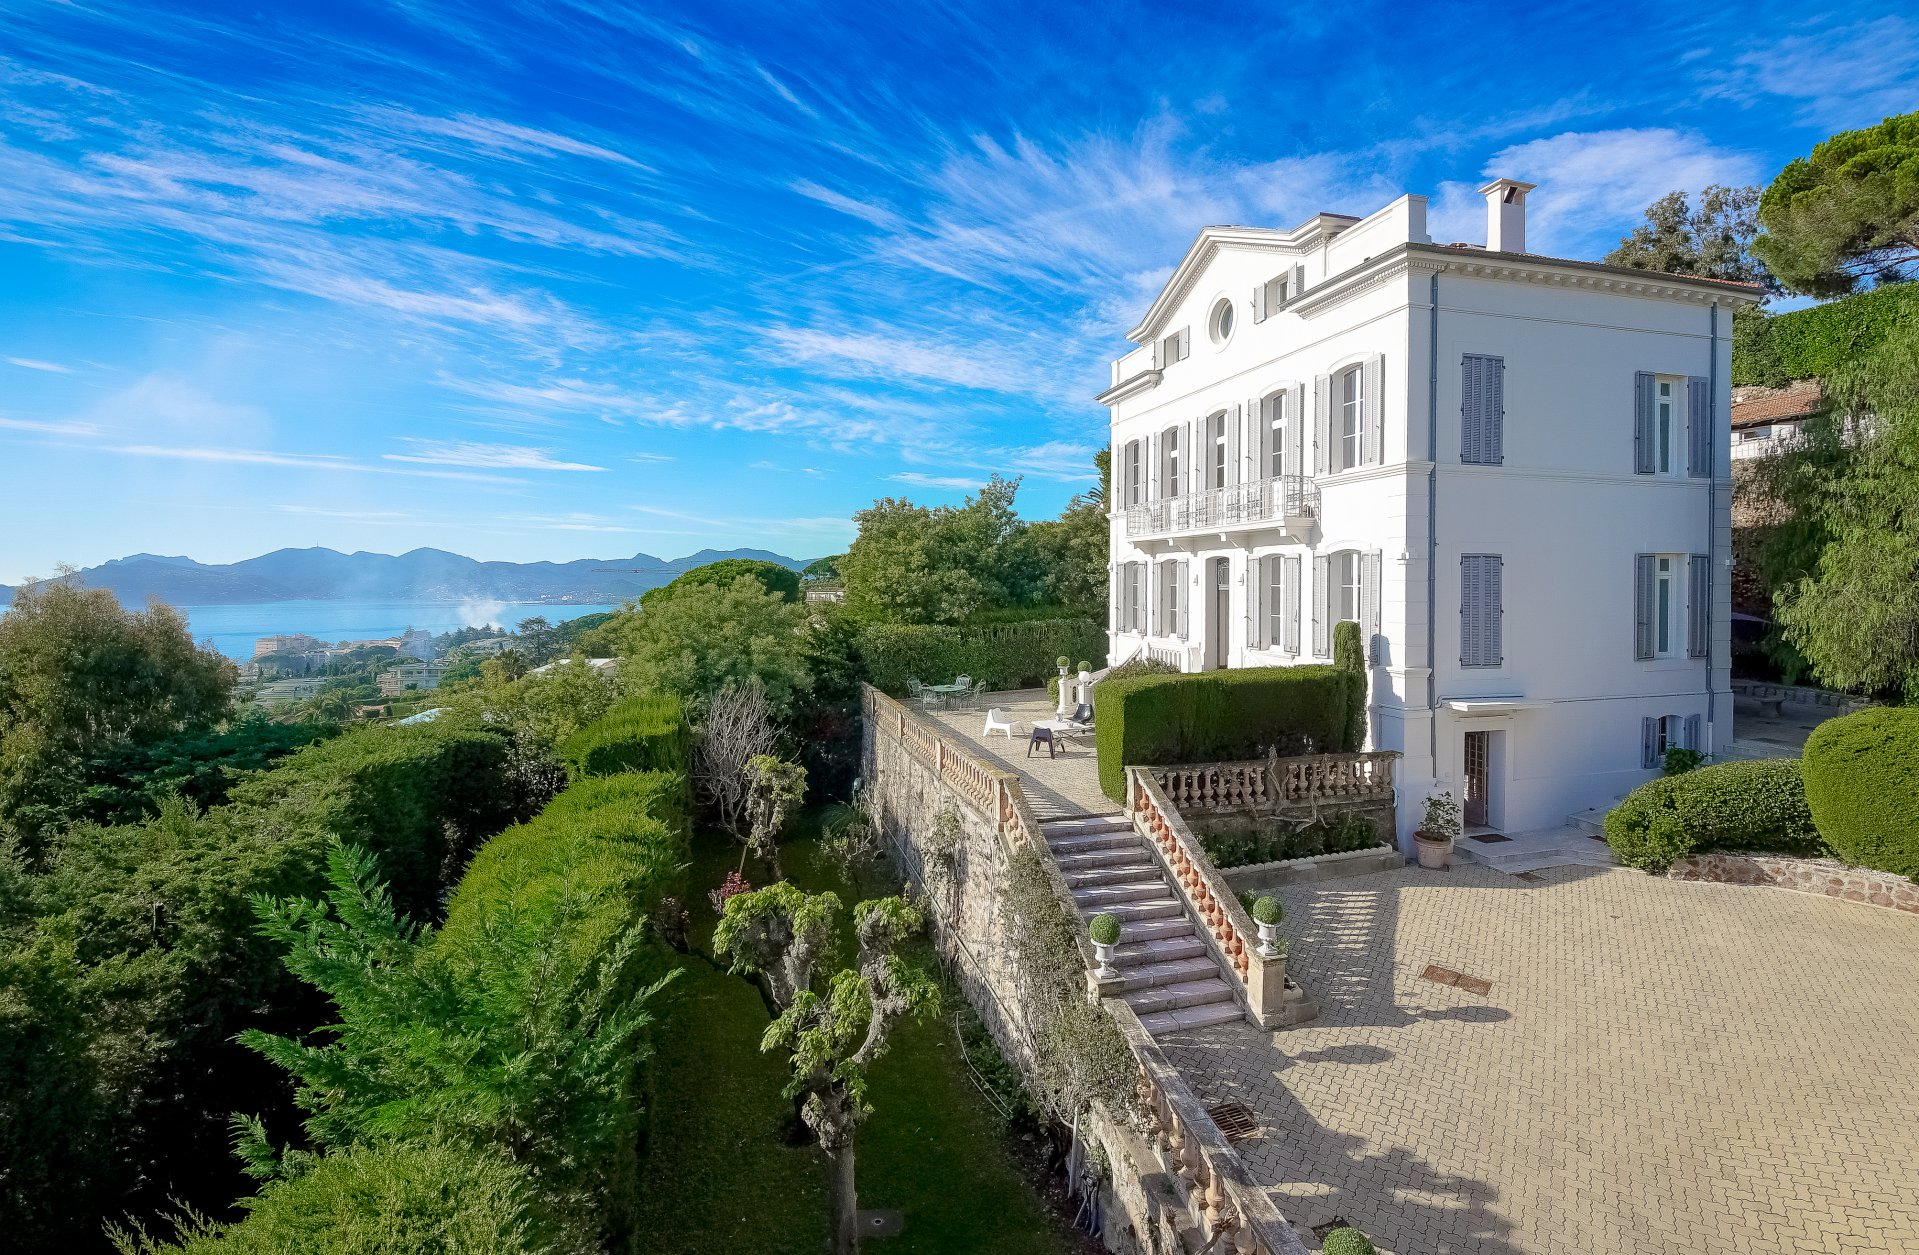 CANNES CROIX DES GARDES - BEAUTIFUL VILLA OF 19TH CENTURY